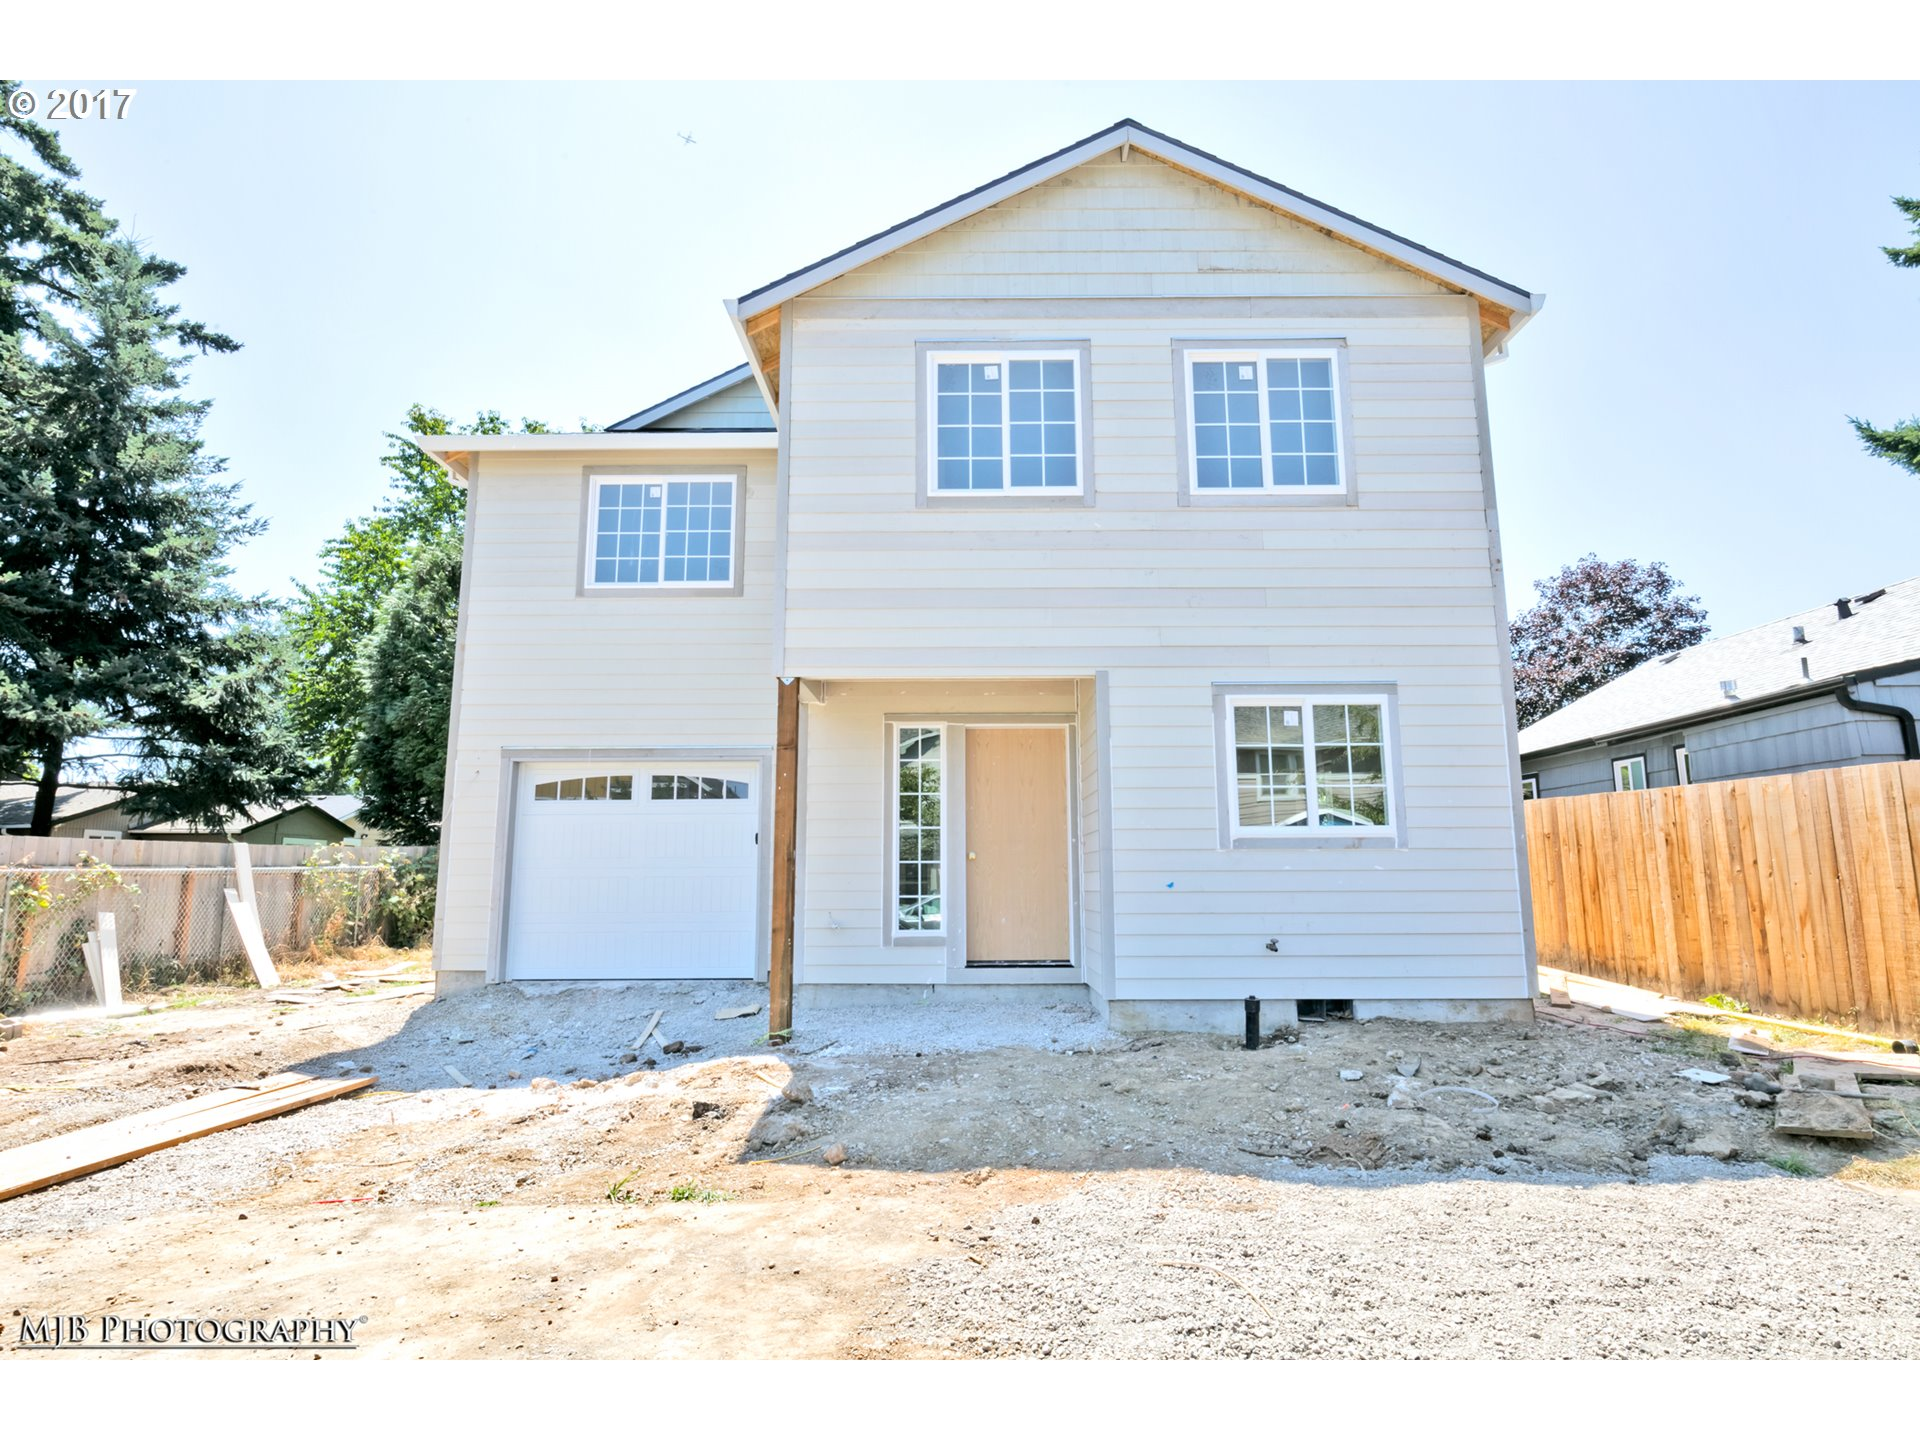 Beautiful new construction w/garage in NoPo near shopping, dining, transit, & freeway access! Also near other pop neighbrhds: Mississippi, Arbor Lodge & U of P! BikeScore 80! Quality finishes, built by a long time, local builder! 3 bdrm, 2 1/2 bth w/wood flrs on main, open kitch w/SS apps, forced air heating, hi-ceilings, &much more! Nearly complete & ready for occupancy for summer!